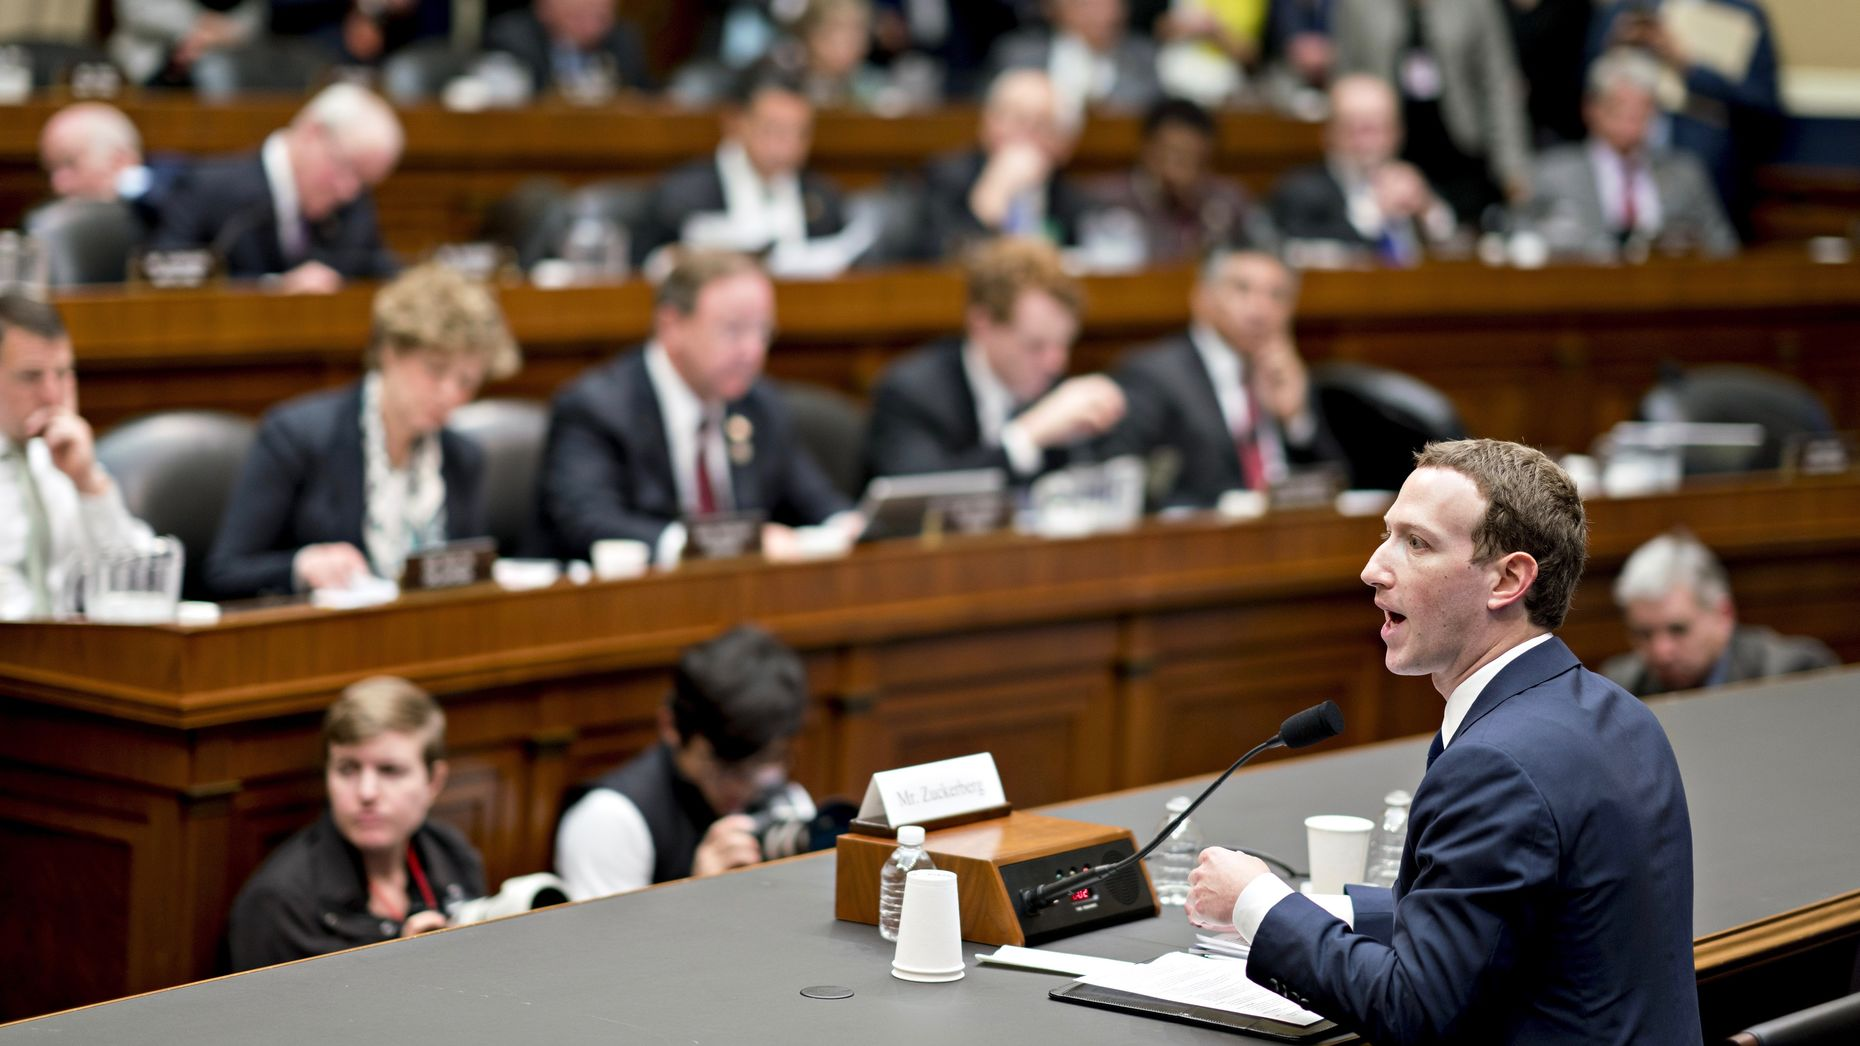 Facebook CEO Mark Zuckerberg speaks to a House committee on Wednesday. Photo by Bloomberg.